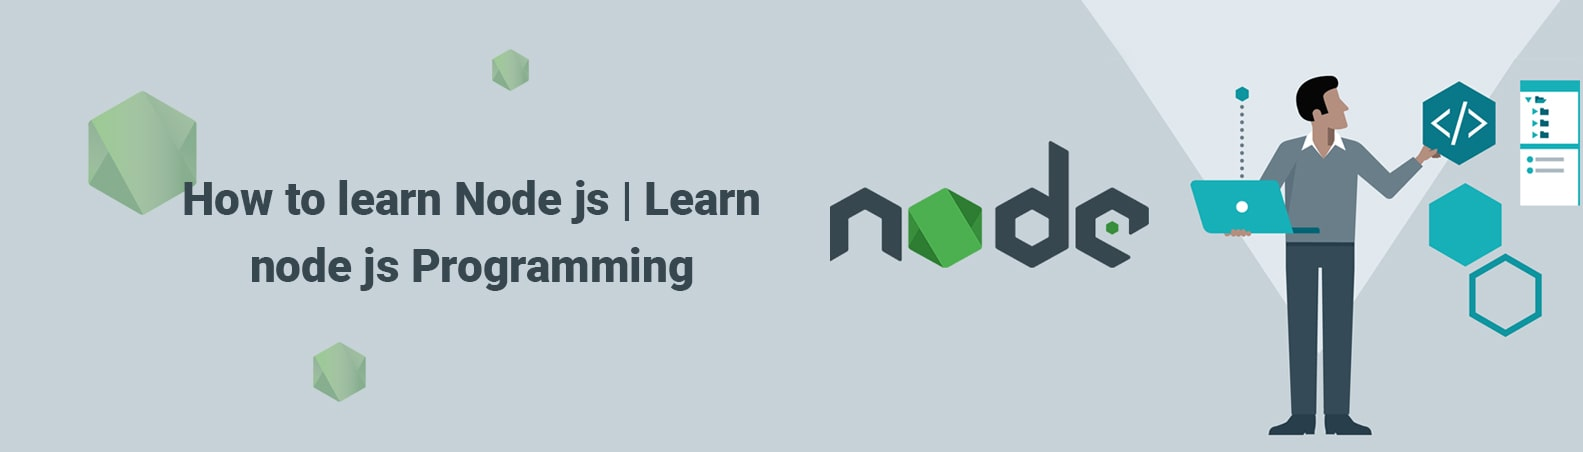 How to learn Node js | Learn node js Programming